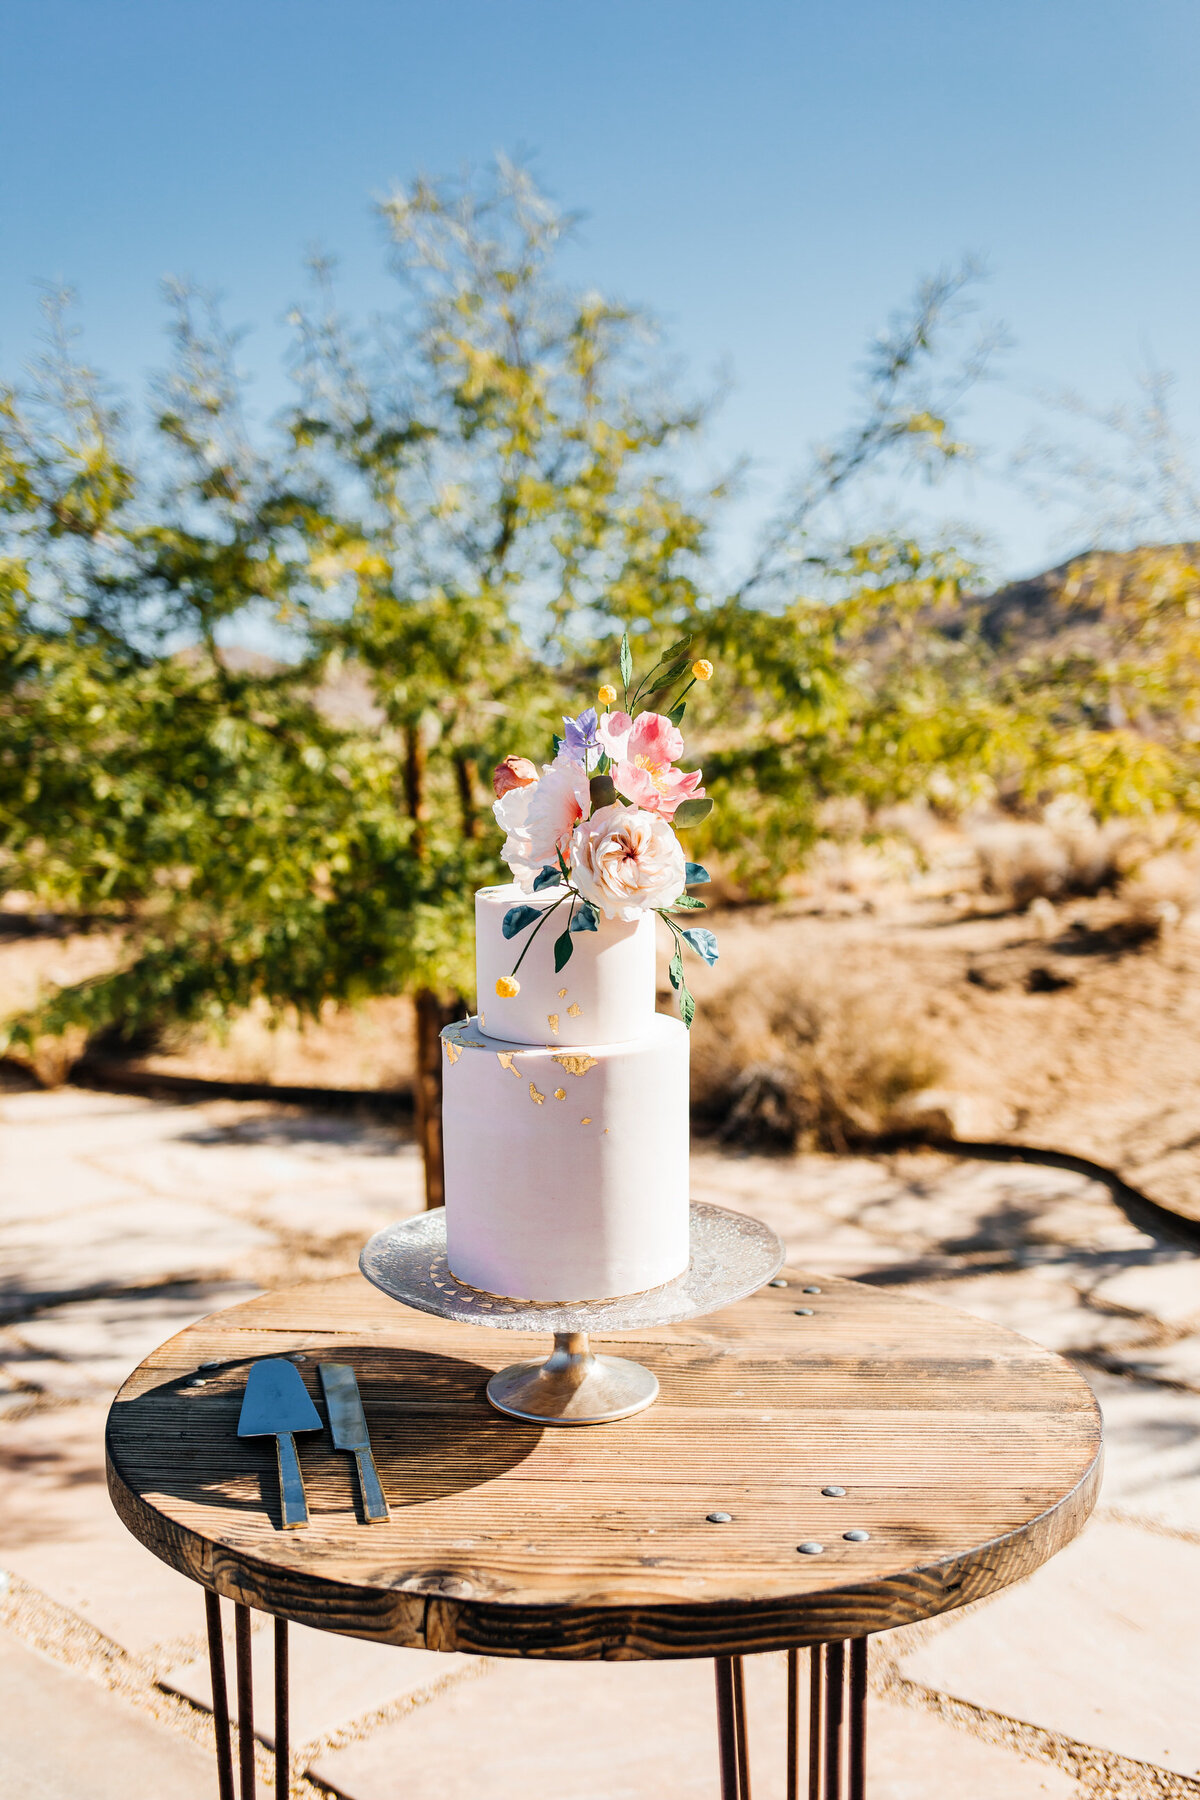 colorful-joshua-tree-elopement-inspiration-joshua-tree-wedding-photographer-palm-springs-wedding-photographer-erin-marton-photography-5